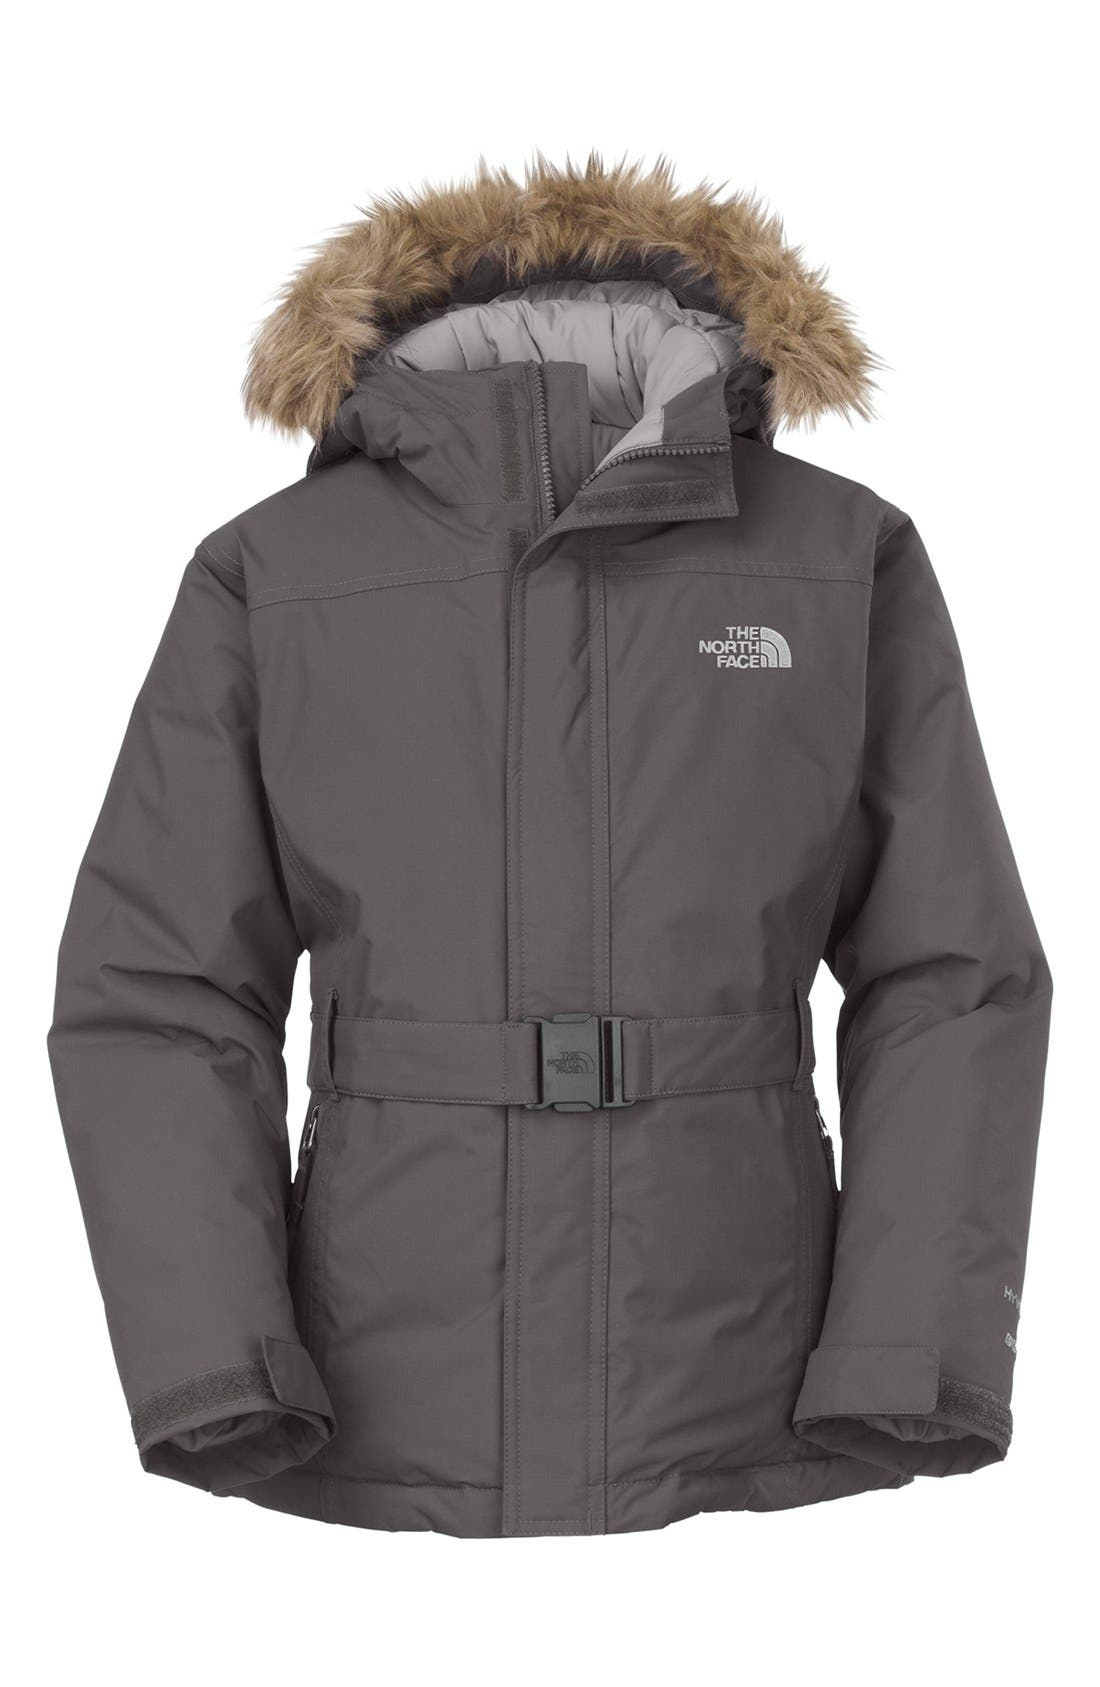 Alternate Image 1 Selected - The North Face 'Greenland' Jacket (Little Girls & Big Girls)